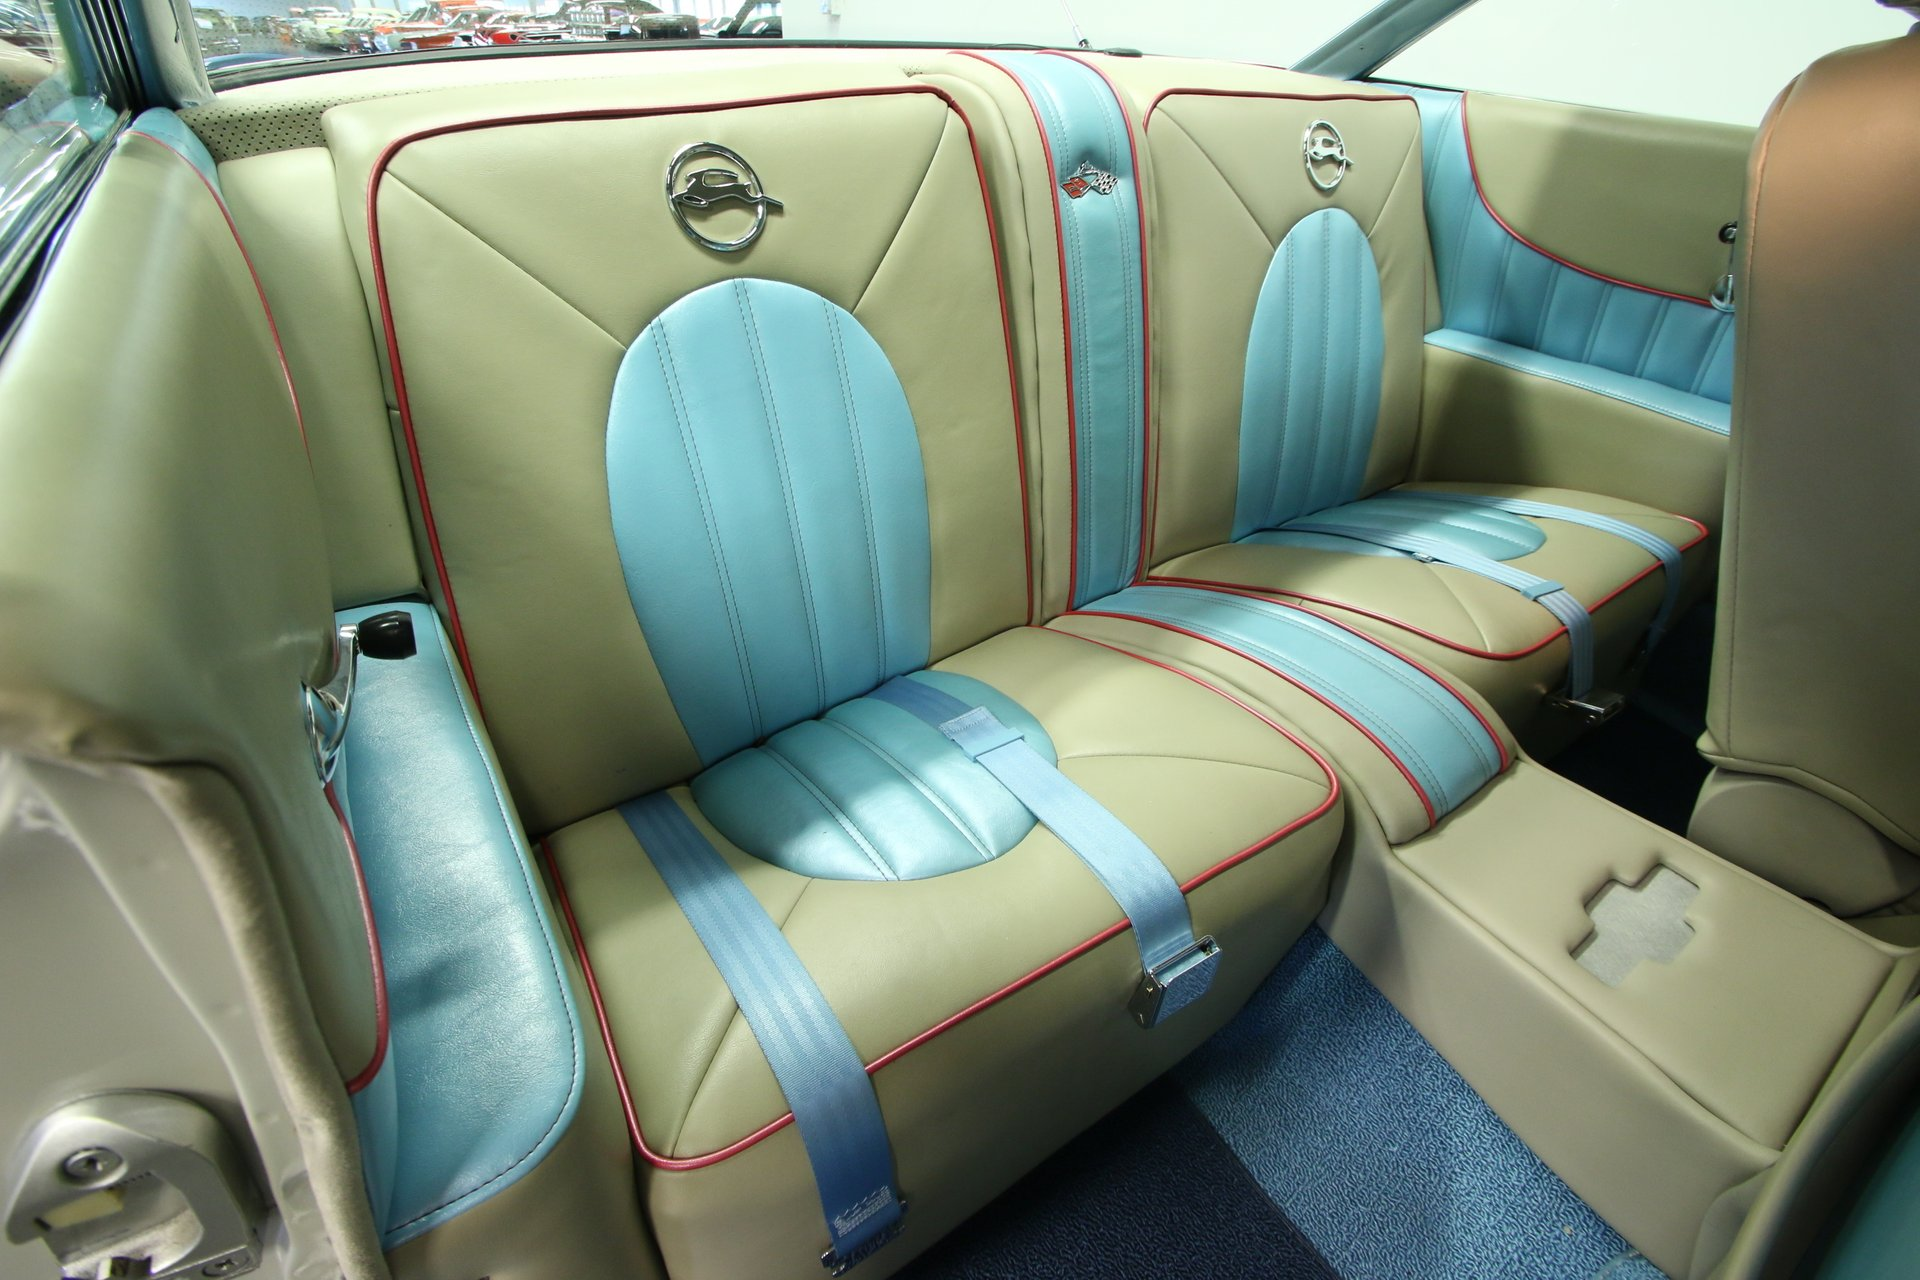 1960 Chevy Impala Interior